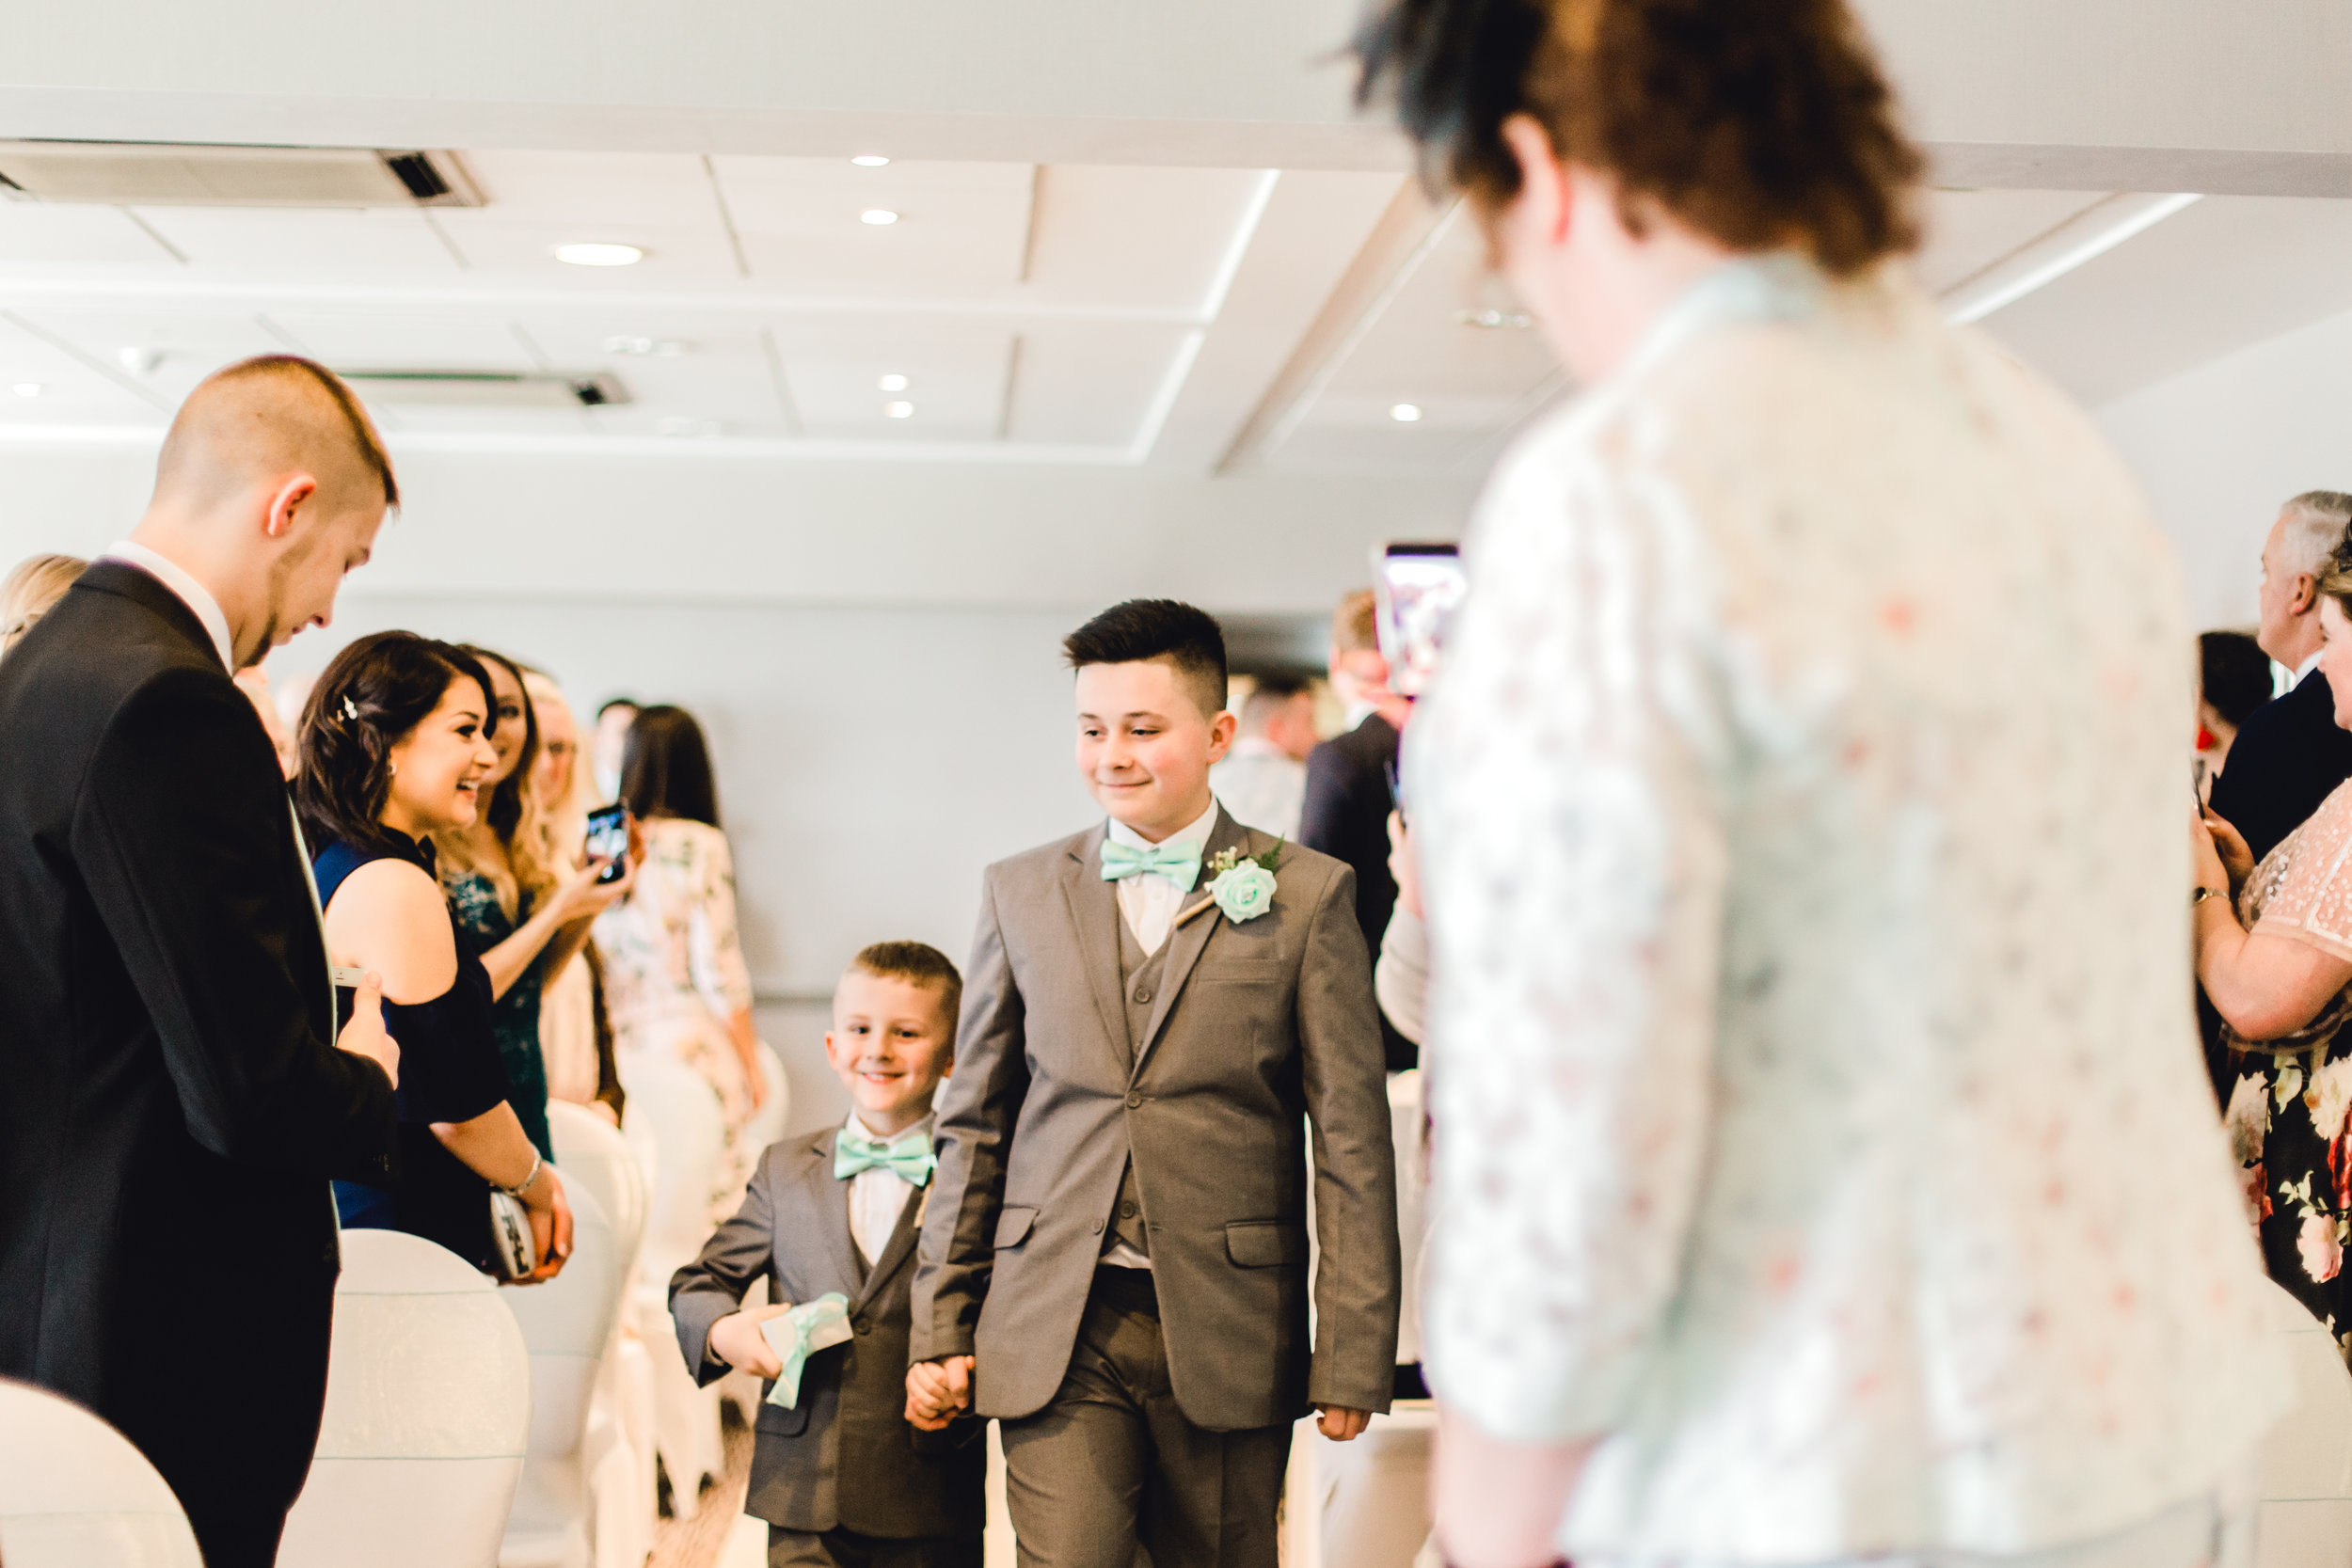 Pageboys walking down the isle before wedding ceremony at cedar court hotel, huddersfield